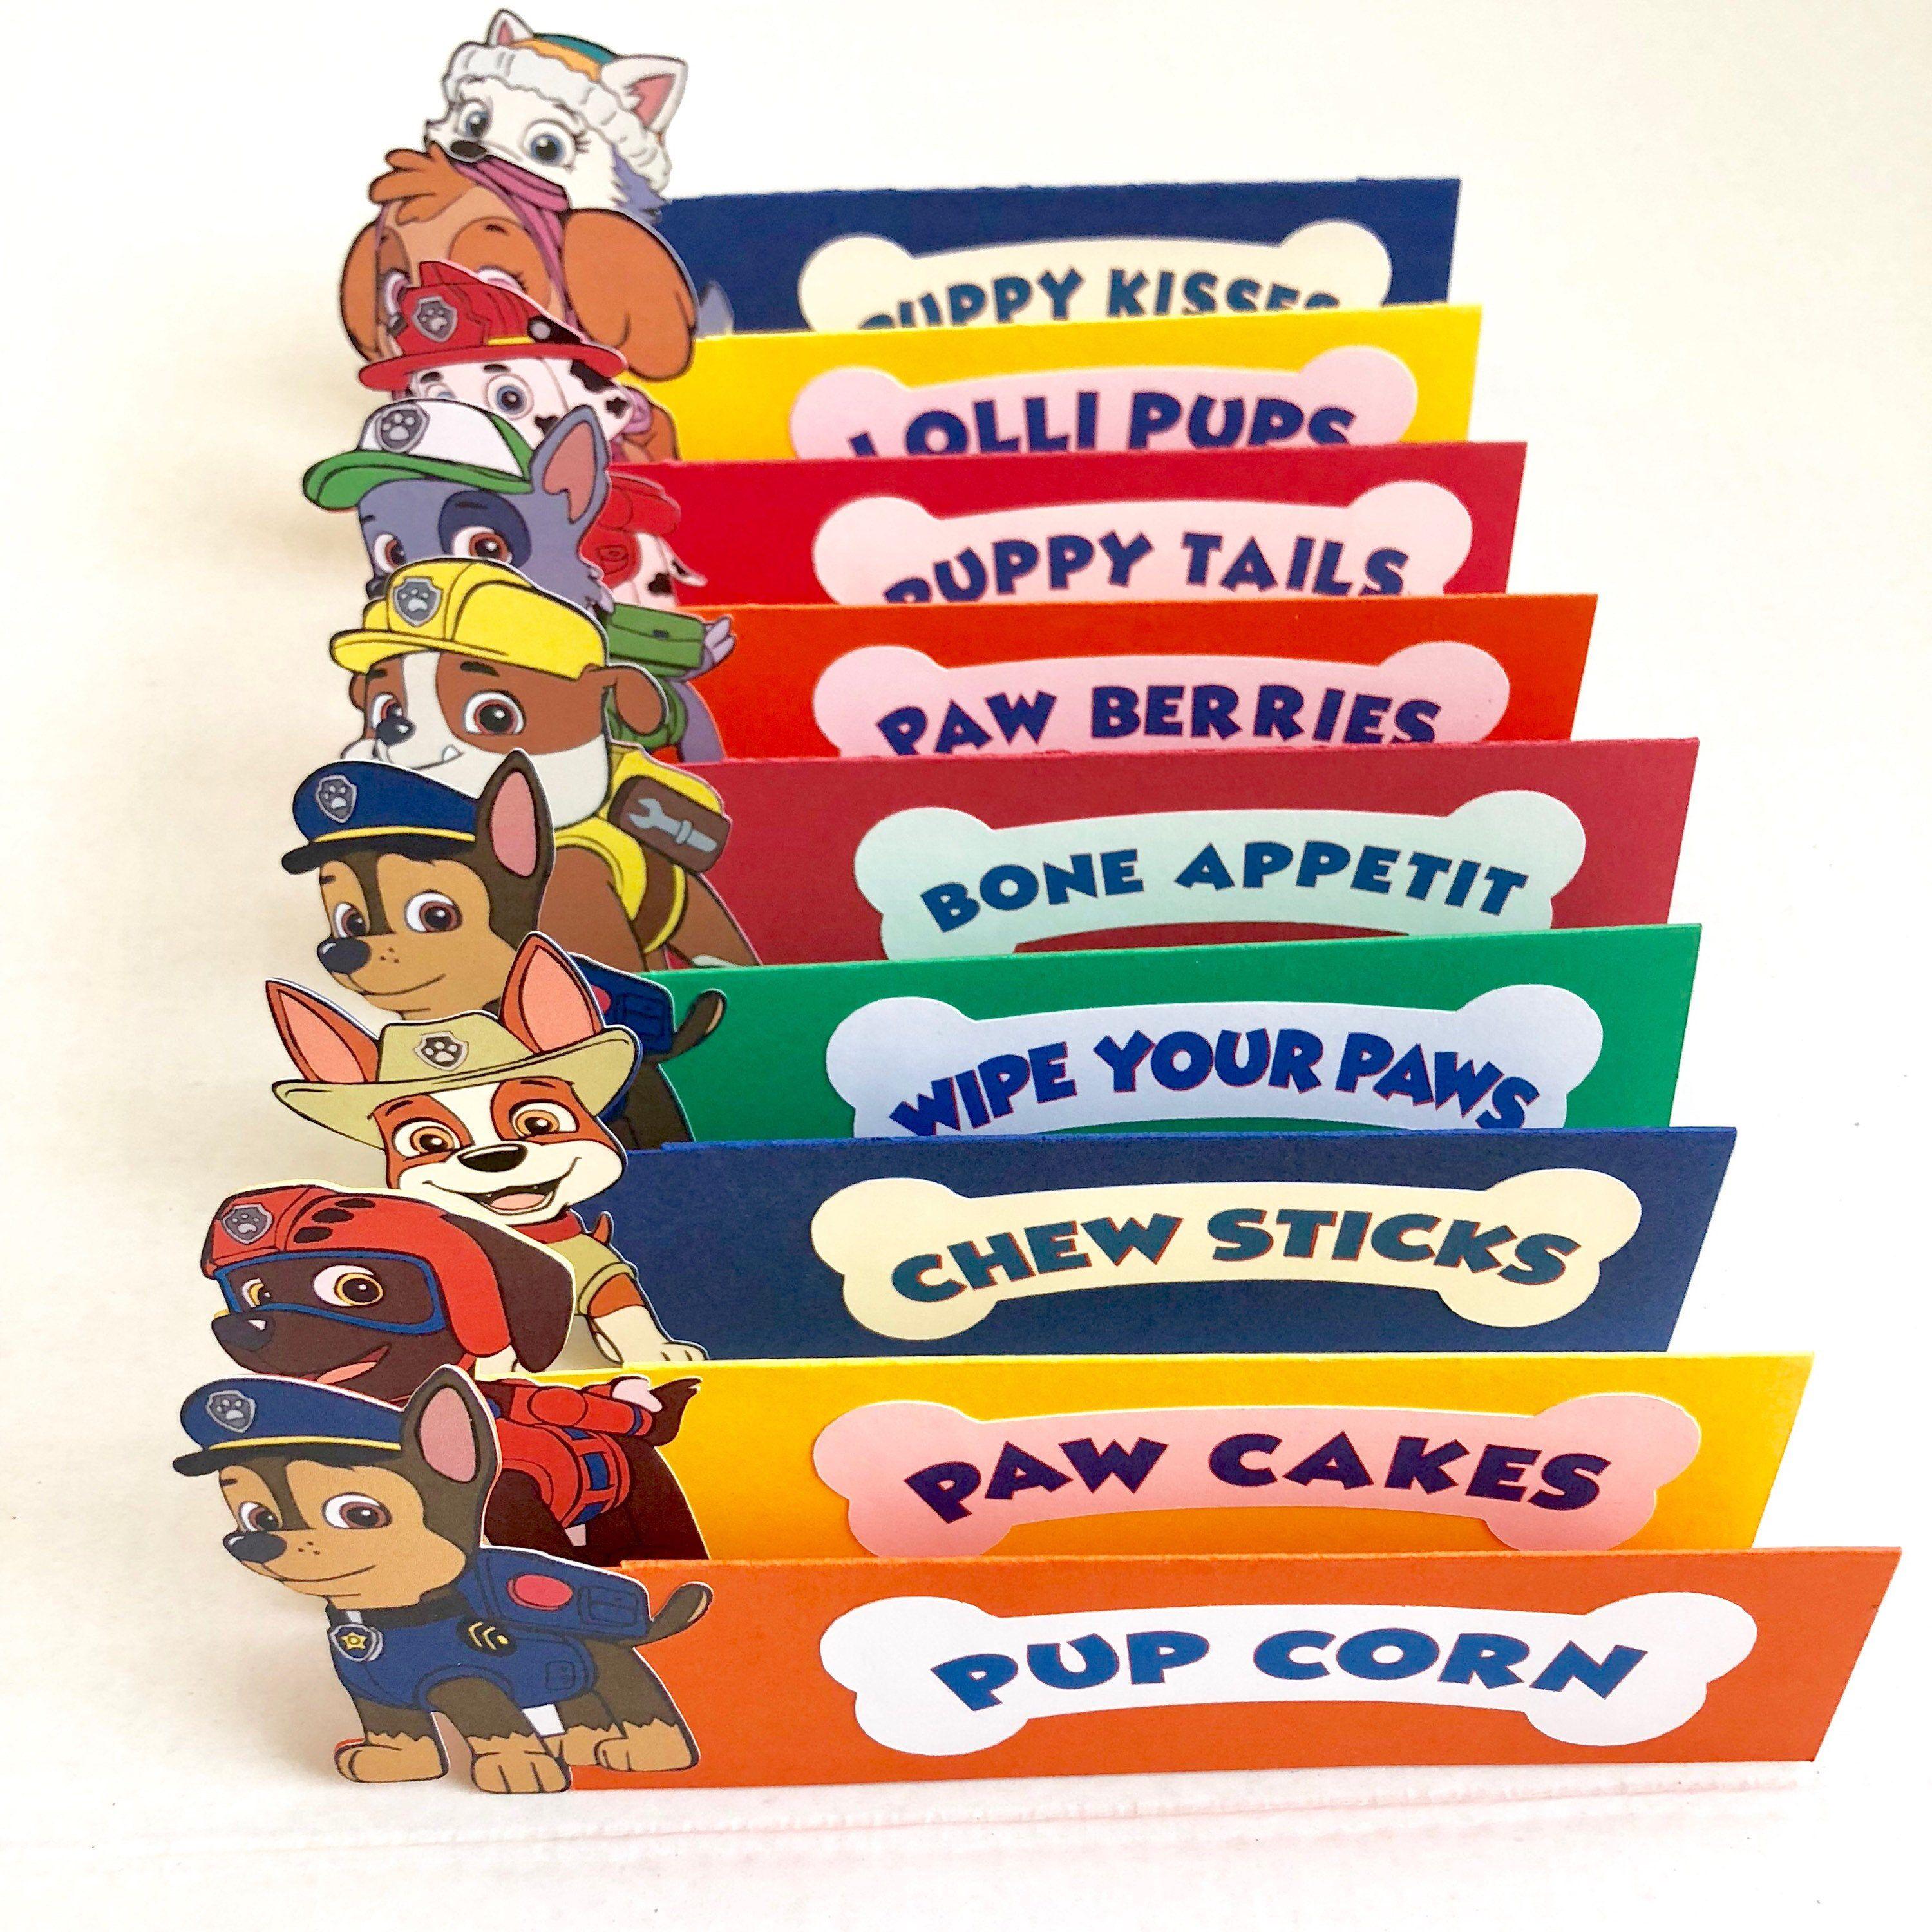 Paw Patrol Food Cards, Paw Patrol, Food Cards, Birthday Party Decor, Paw Patrol Decor, Table Cards - Paw patrol party decorations, Paw patrol birthday, Paw patrol birthday theme, Paw patrol party food, Paw patrol decorations, Boy birthday parties - Coordinate your birthday party with these cute Paw Patrol Food Card Labels  Need matching decor in this theme but don't see it in my shop  Message me so that I can create something for you! I love custom orders! PLEASE PROVIDE DATE NEEDED BY IN COMMENTS TO SELLER! Details  Set of 6 Food Labels  Labels Measure approximately 7 75x3 5  Characters printed on card stock & machine cut  Characters will be randomly chosen unless specified in comments to seller    Dog bone wording printed on bone & machine cut  Colors Base colors will be mixed unless specified in comments to seller 6 Labels read Farmer Yumi's crop Pupcorn Puppy chow Lollipups  Cheese Ruffs Dog Chews Need a custom order with different food names  Message me when placing your order   LEGAL DISCLAIMER This item is not a licensed product  All copyrights and trademarks of the character images used belong to their respective owners and are not being sold with this listing  You are paying for my time, services and supplies used to create, customize and assemble this handmade piece for your own personal use